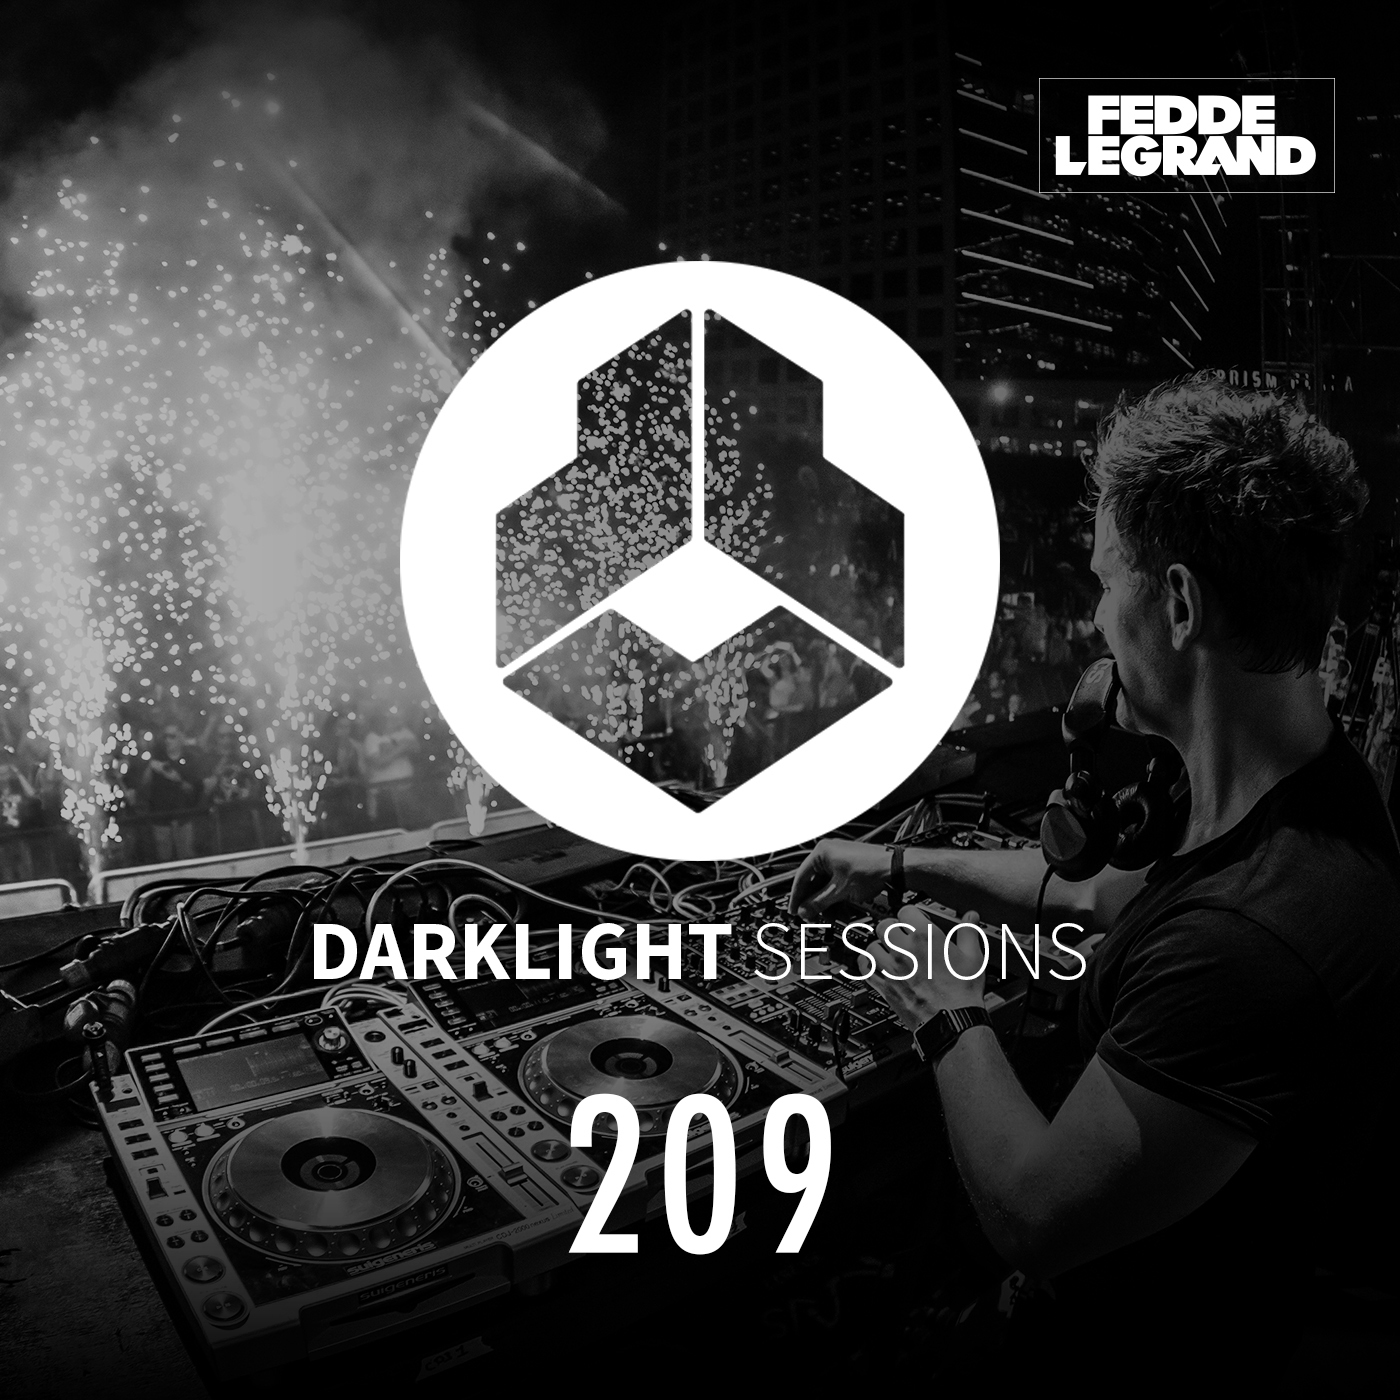 Darklight Sessions 209